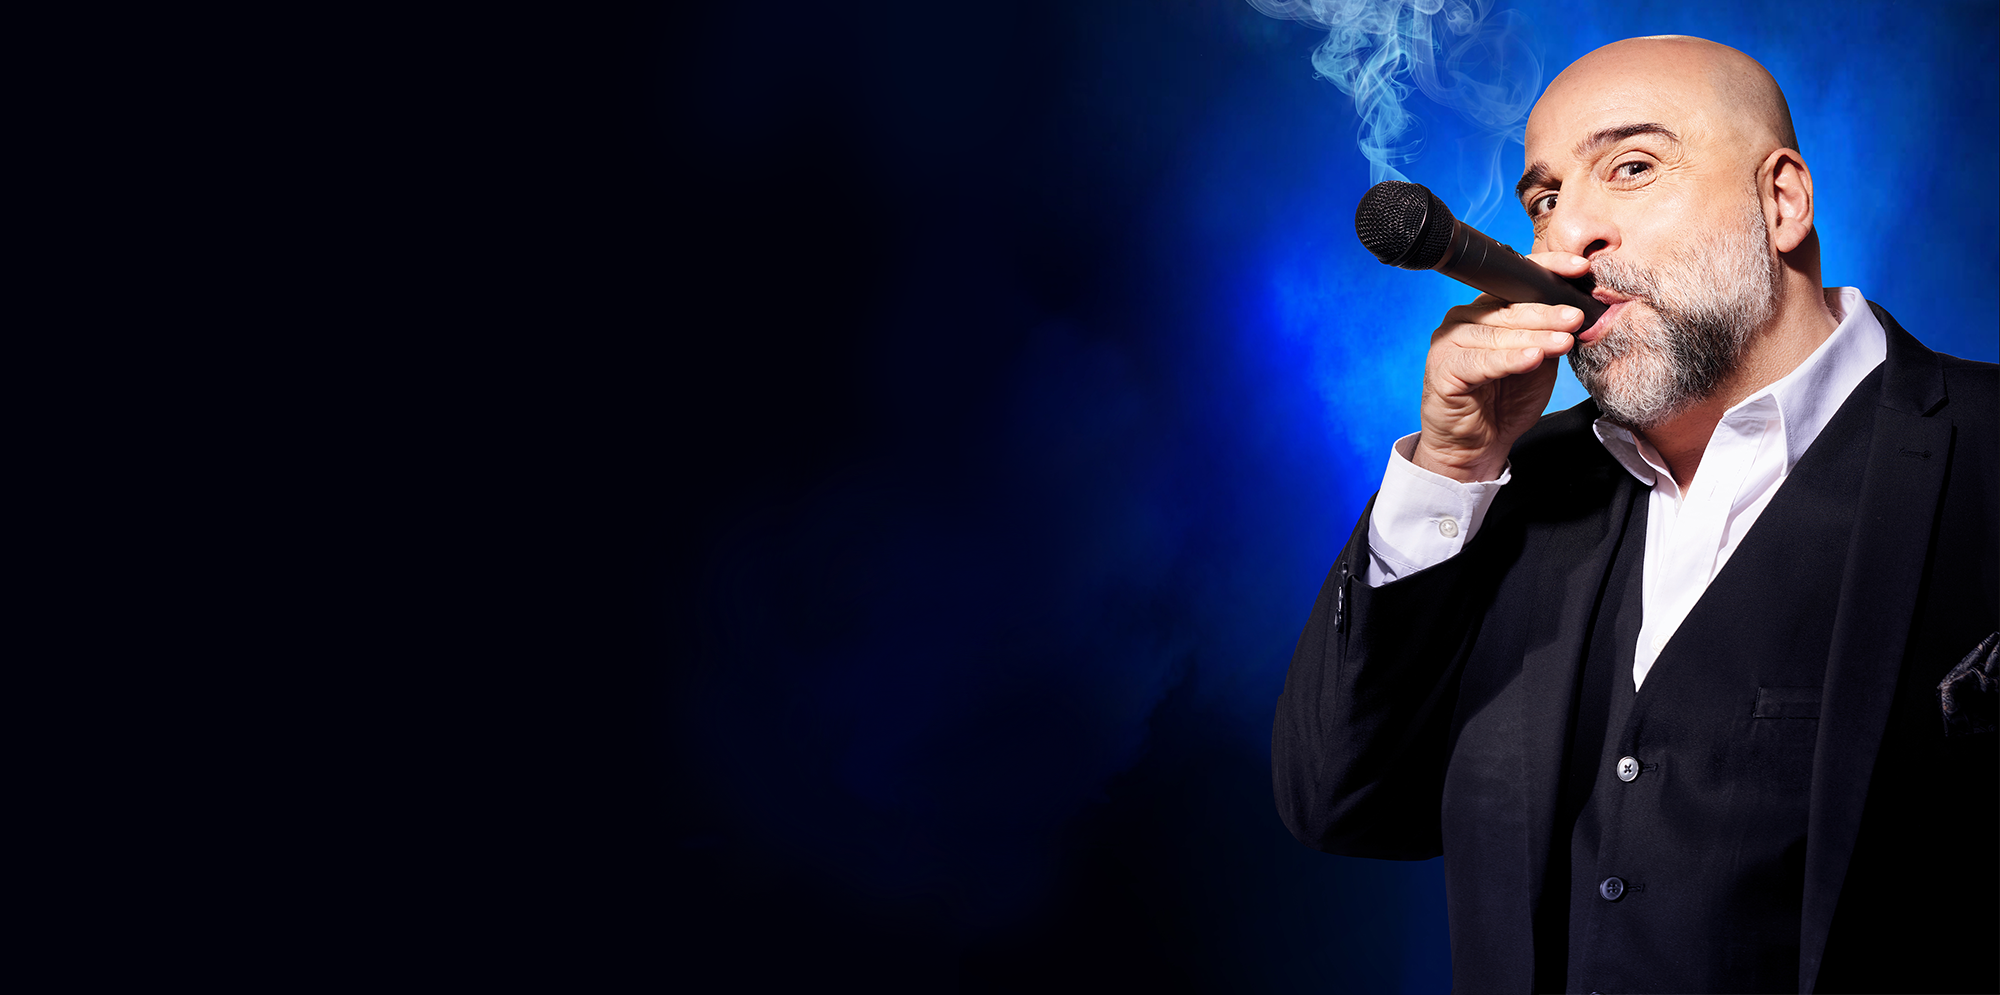 Omid Djalili, wearing a dark suit is looking at the camera and using a microphone as if it's a cigar